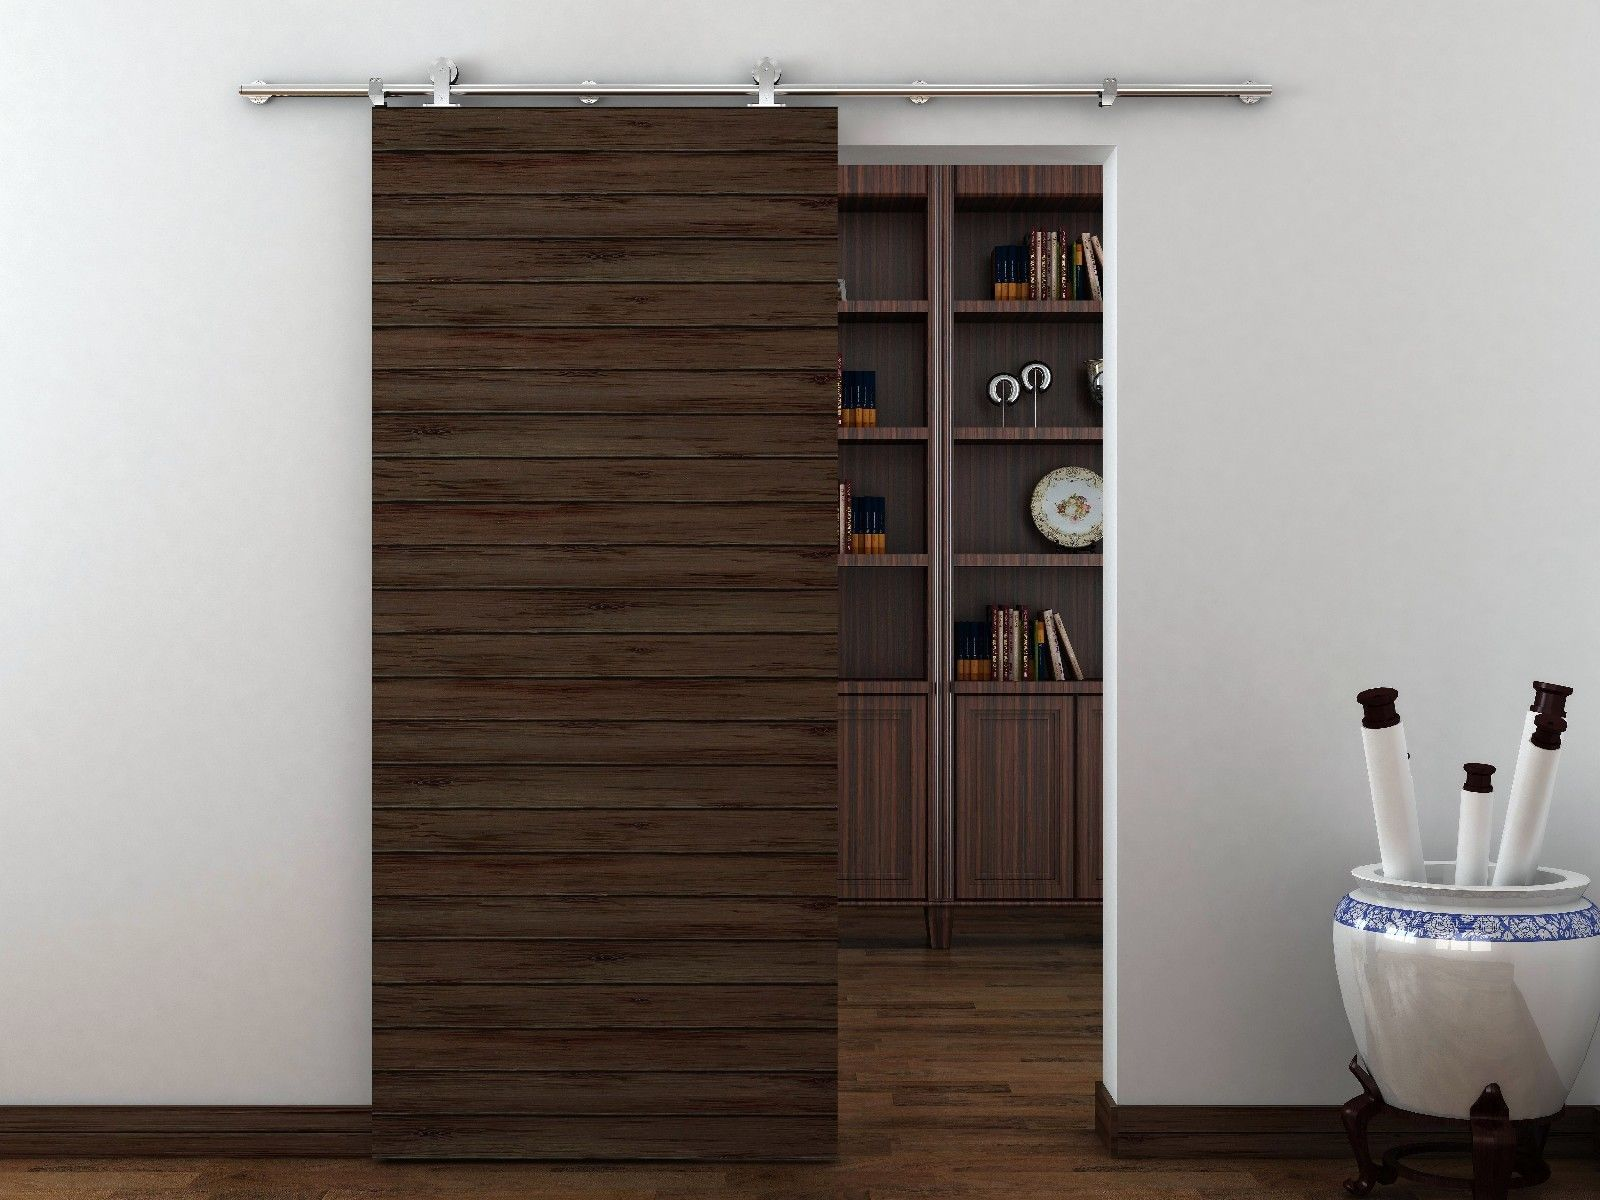 Basora European Modern Stainless Steel Wood Sliding Barn Door